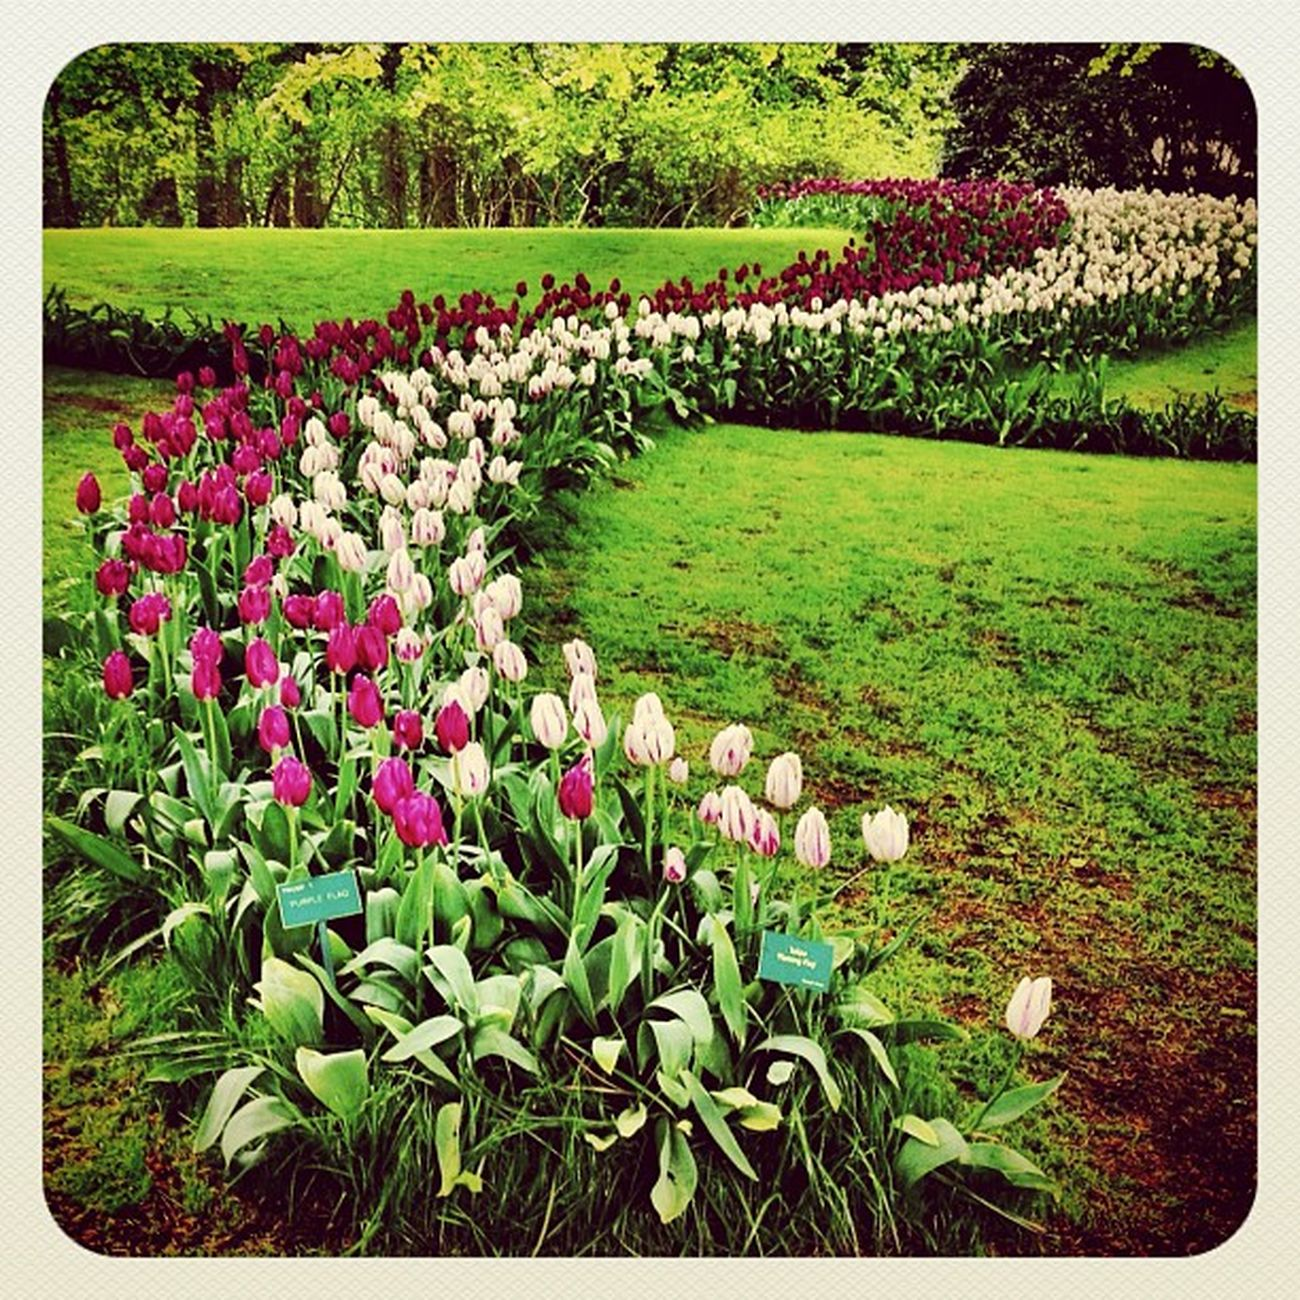 Tulips again ???? #holland #ubiquography #jj_forum #jj #earlybirdlove #ebstyles_gf #dutch #flower #garden #park #keukenhof #tulip Ebstyles_gf Garden Flower Holland Park Tulip Dutch Jj  Keukenhof Earlybirdlove Jj_forum Ubiquography